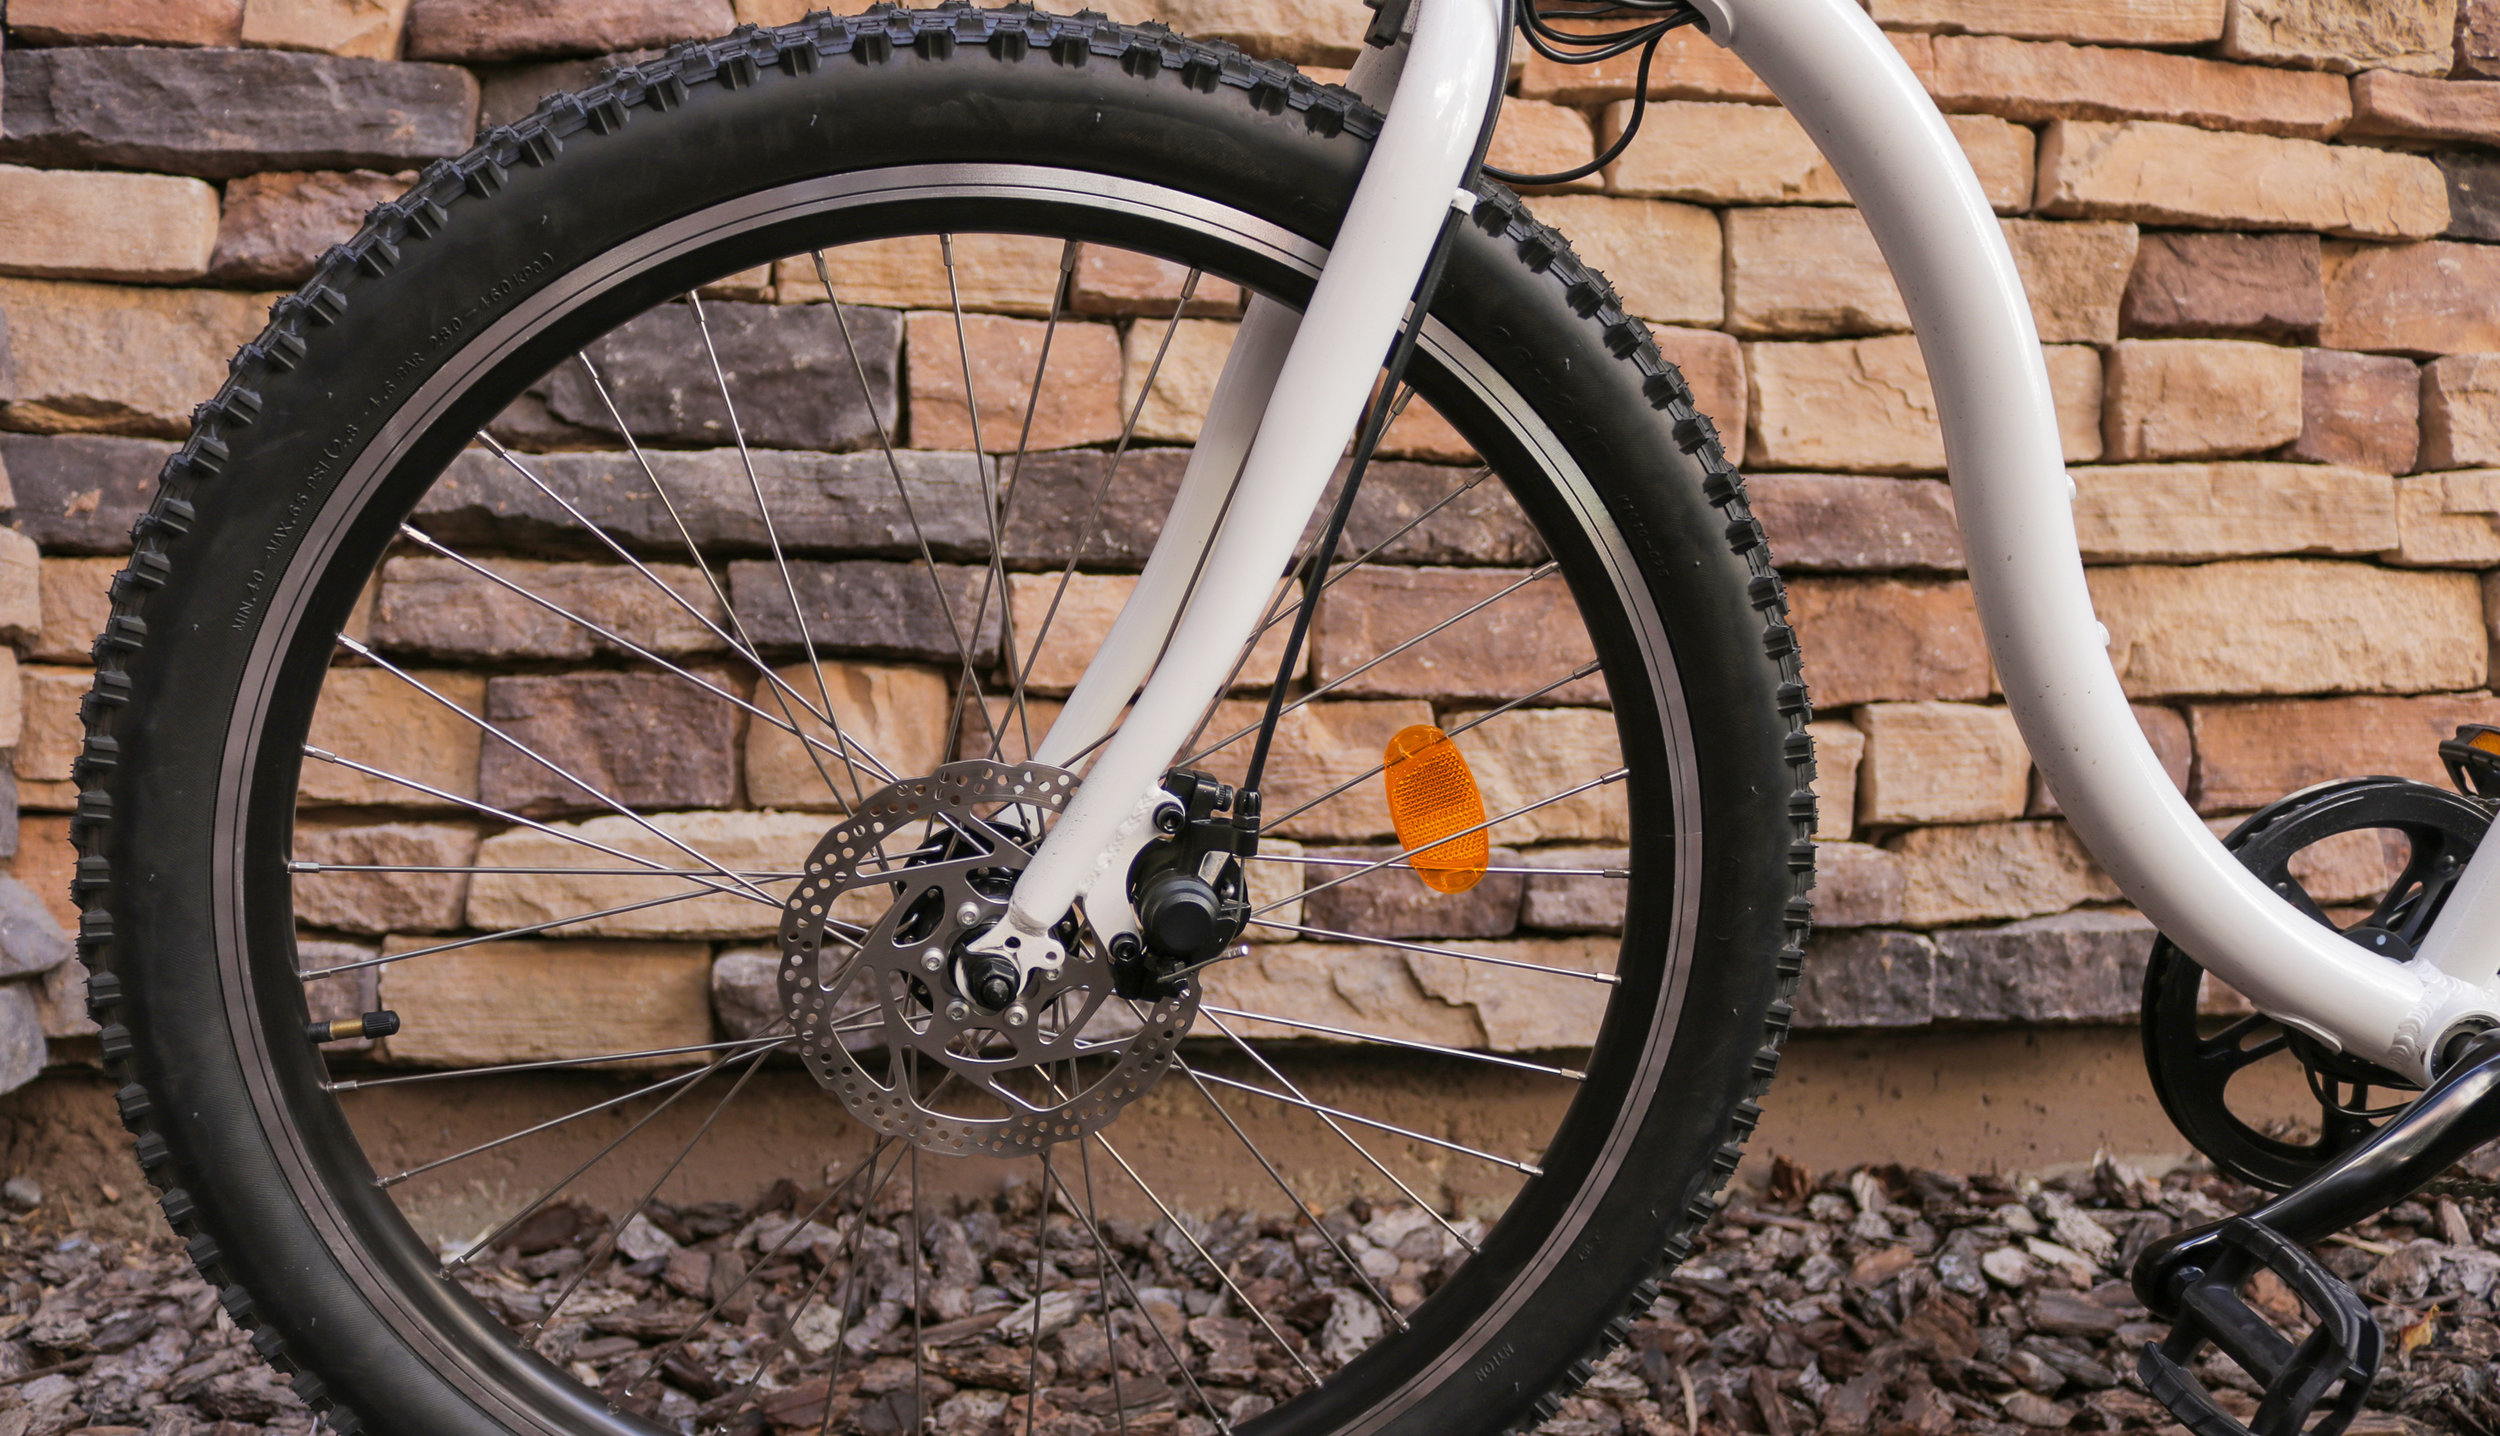 electrified-reviews-wave-electric-bike-review-front-disc-brake-forks.jpg